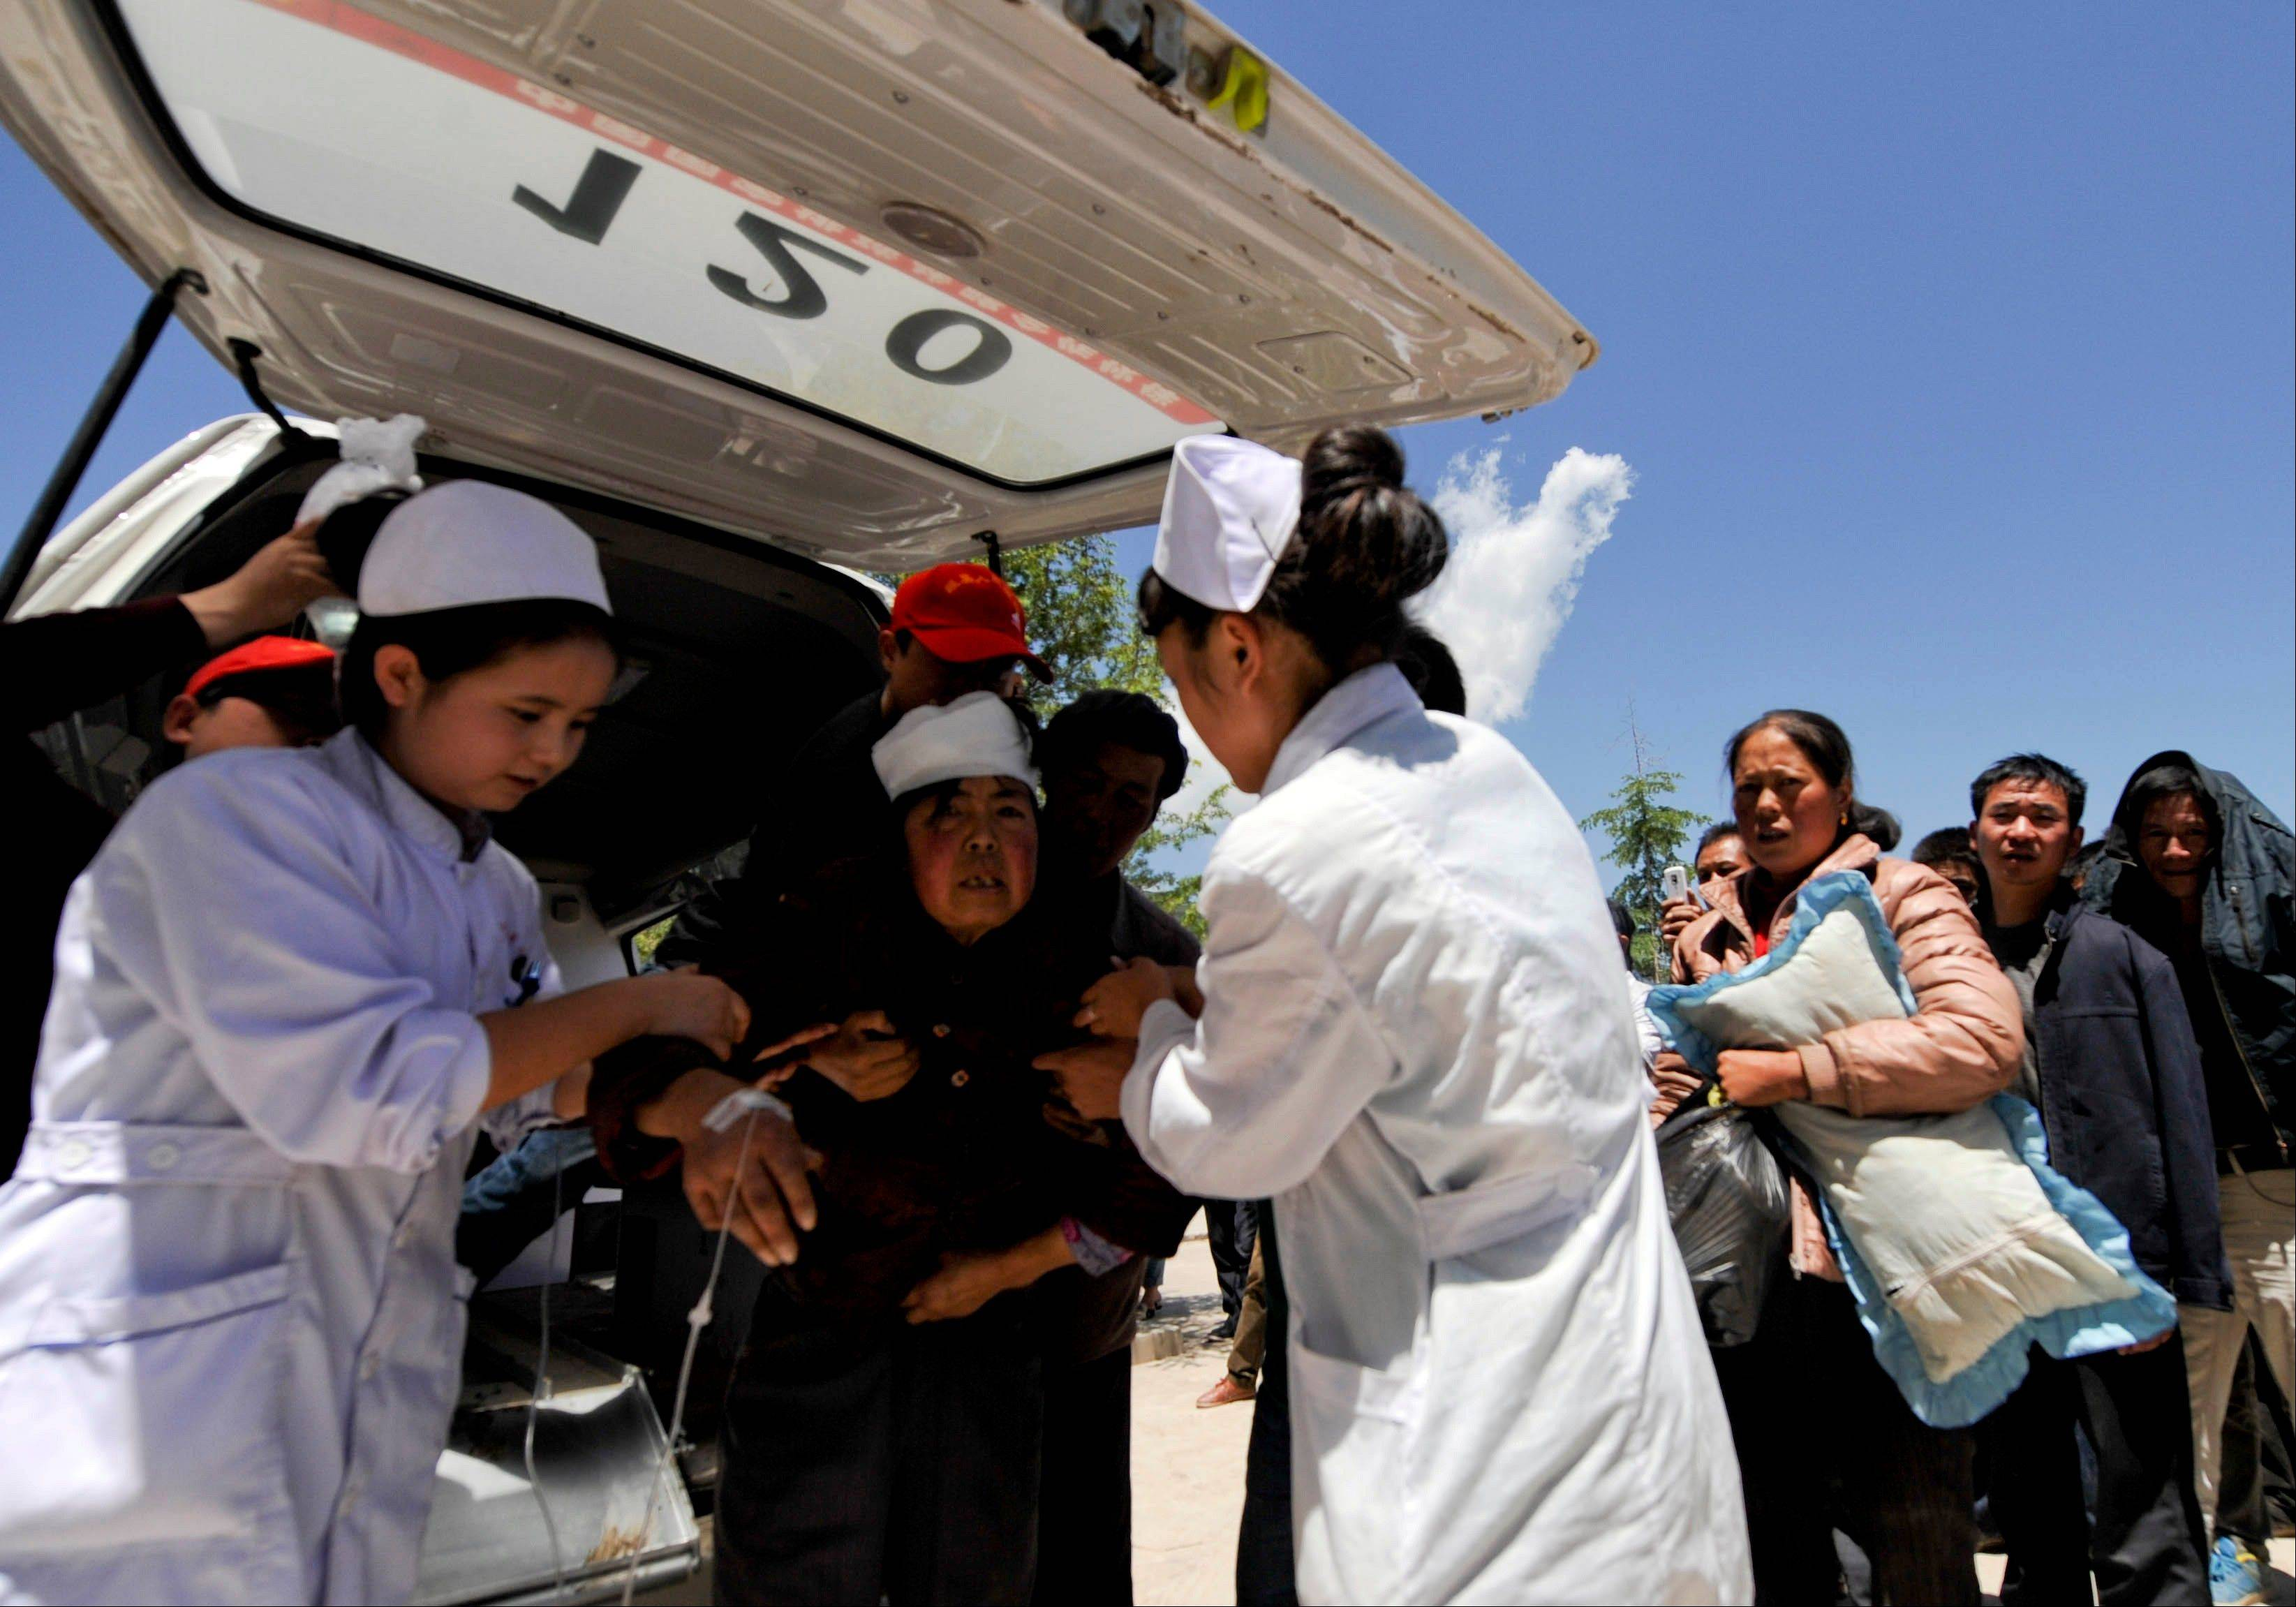 A woman injured in an earthquake is helped by medical workers in Minxian county in Dingxi city in northwest China's Gansu province on Monday, July 22, 2013. A strong earthquake that shook an arid, hilly farming area in northwest China sparked landslides and destroyed or damaged thousands of brick-and-mud homes Monday, killing at least 94 people and injuring more than 1,000, the government said.